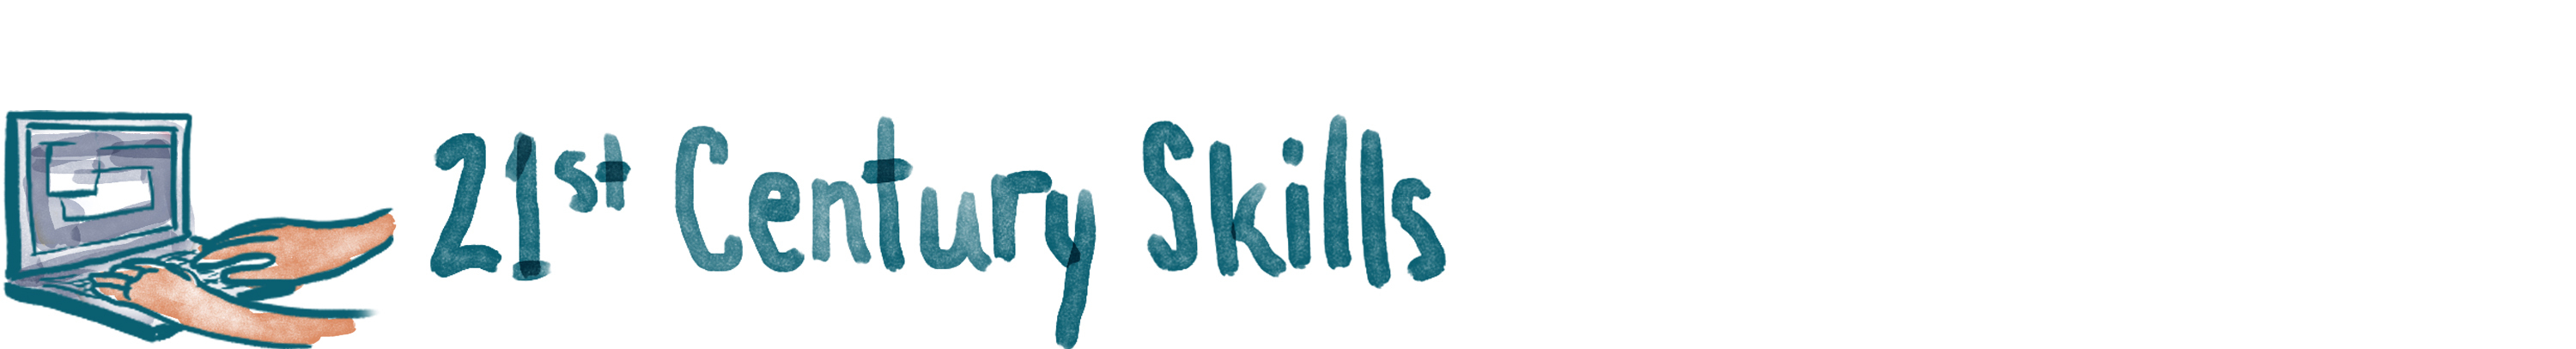 Nonacademic Skills Are Key To Success. But What Should We Call Them?